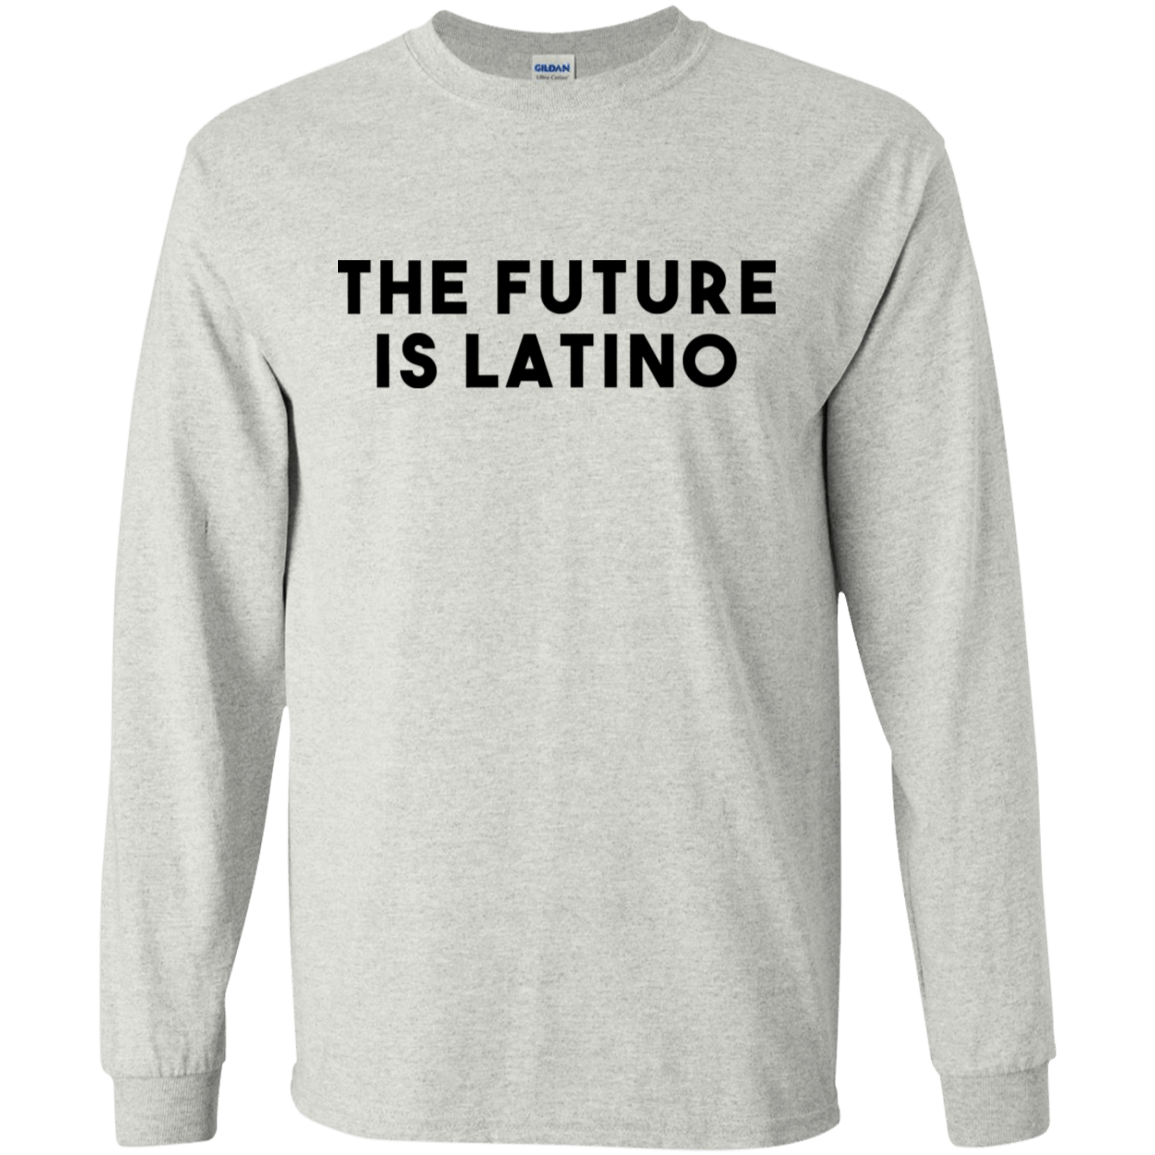 The Future Is Latino 30-2112-73057005-10754 - Tee Ript